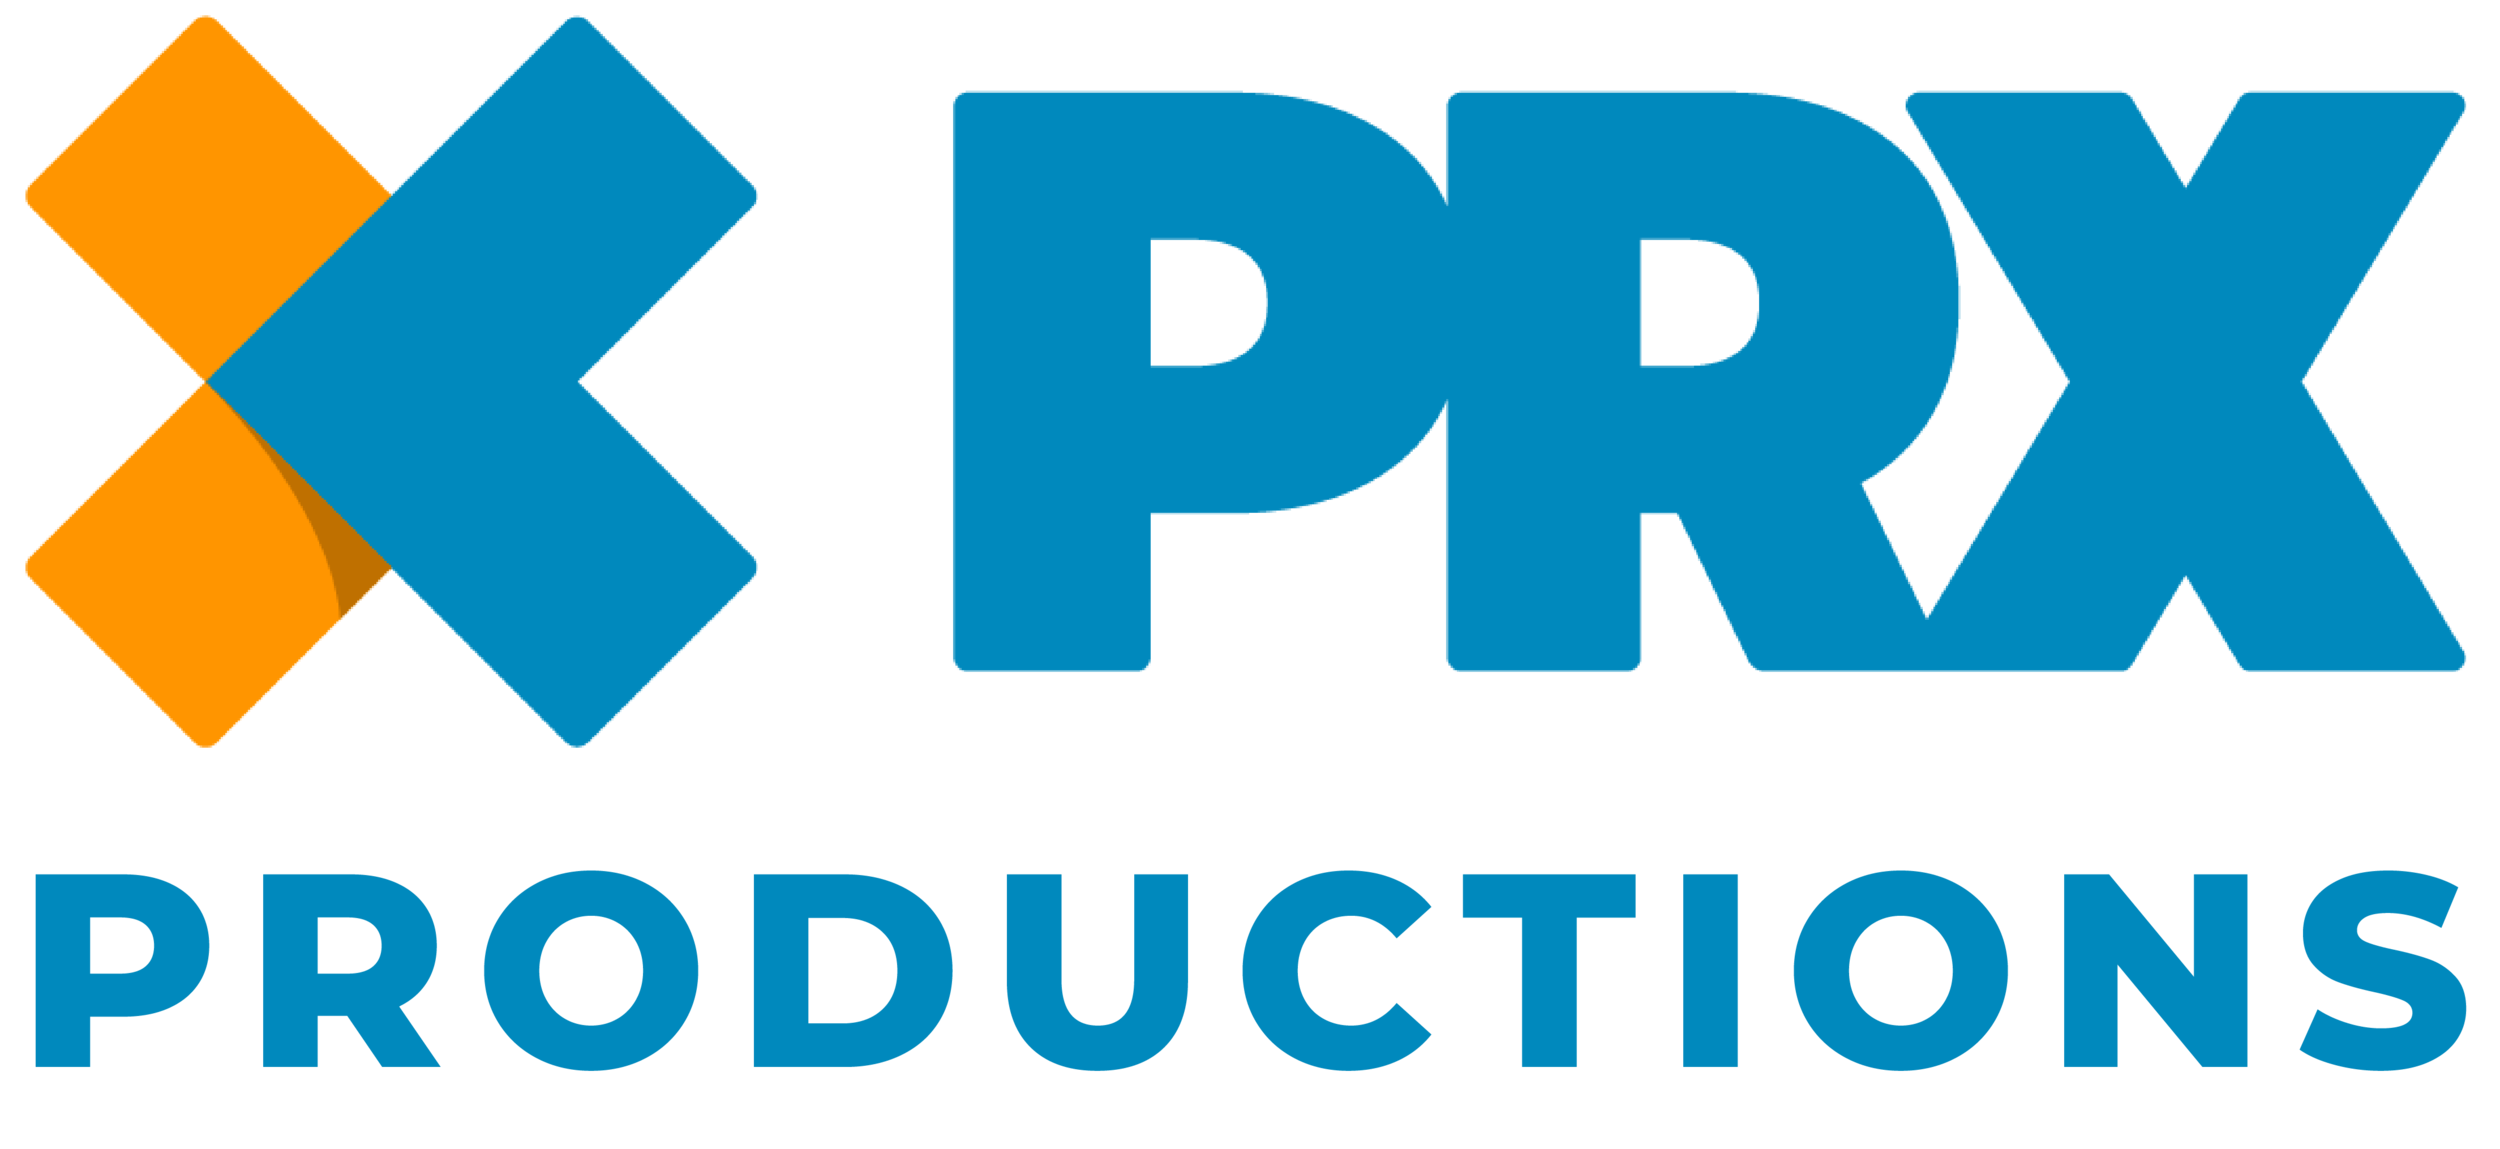 PRX_Productions_Color_Stacked.png